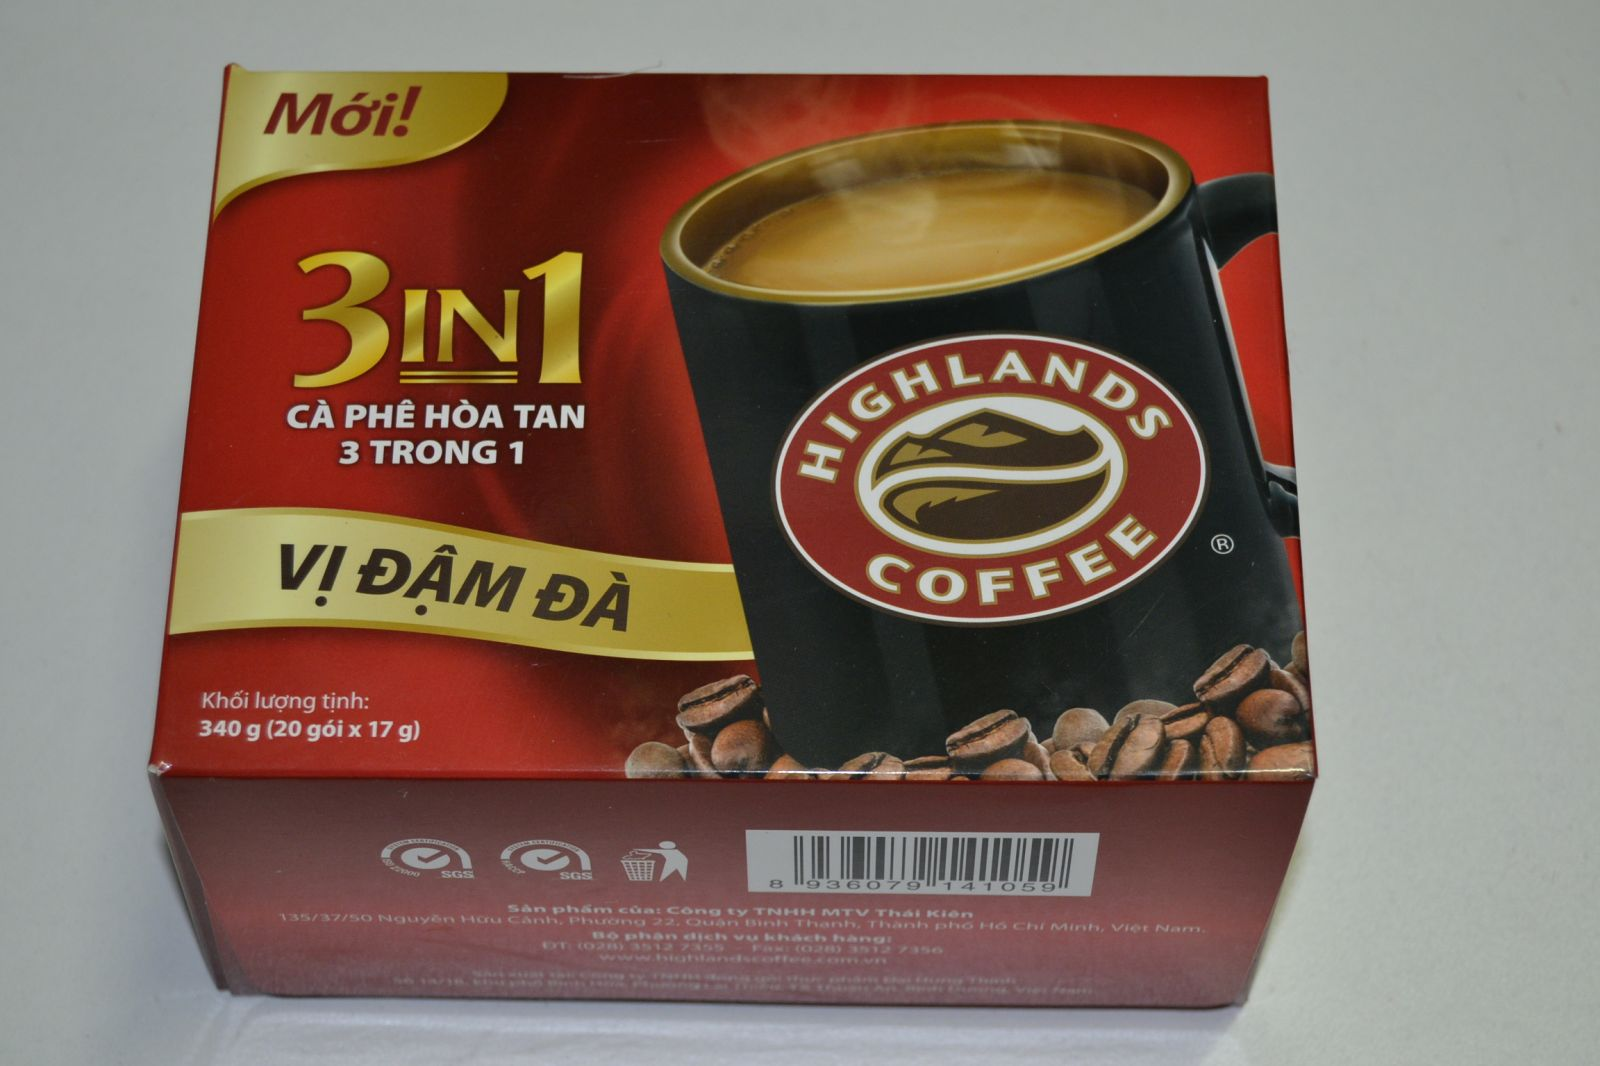 Instantní káva 3 v1 - Highlands Coffee 340g